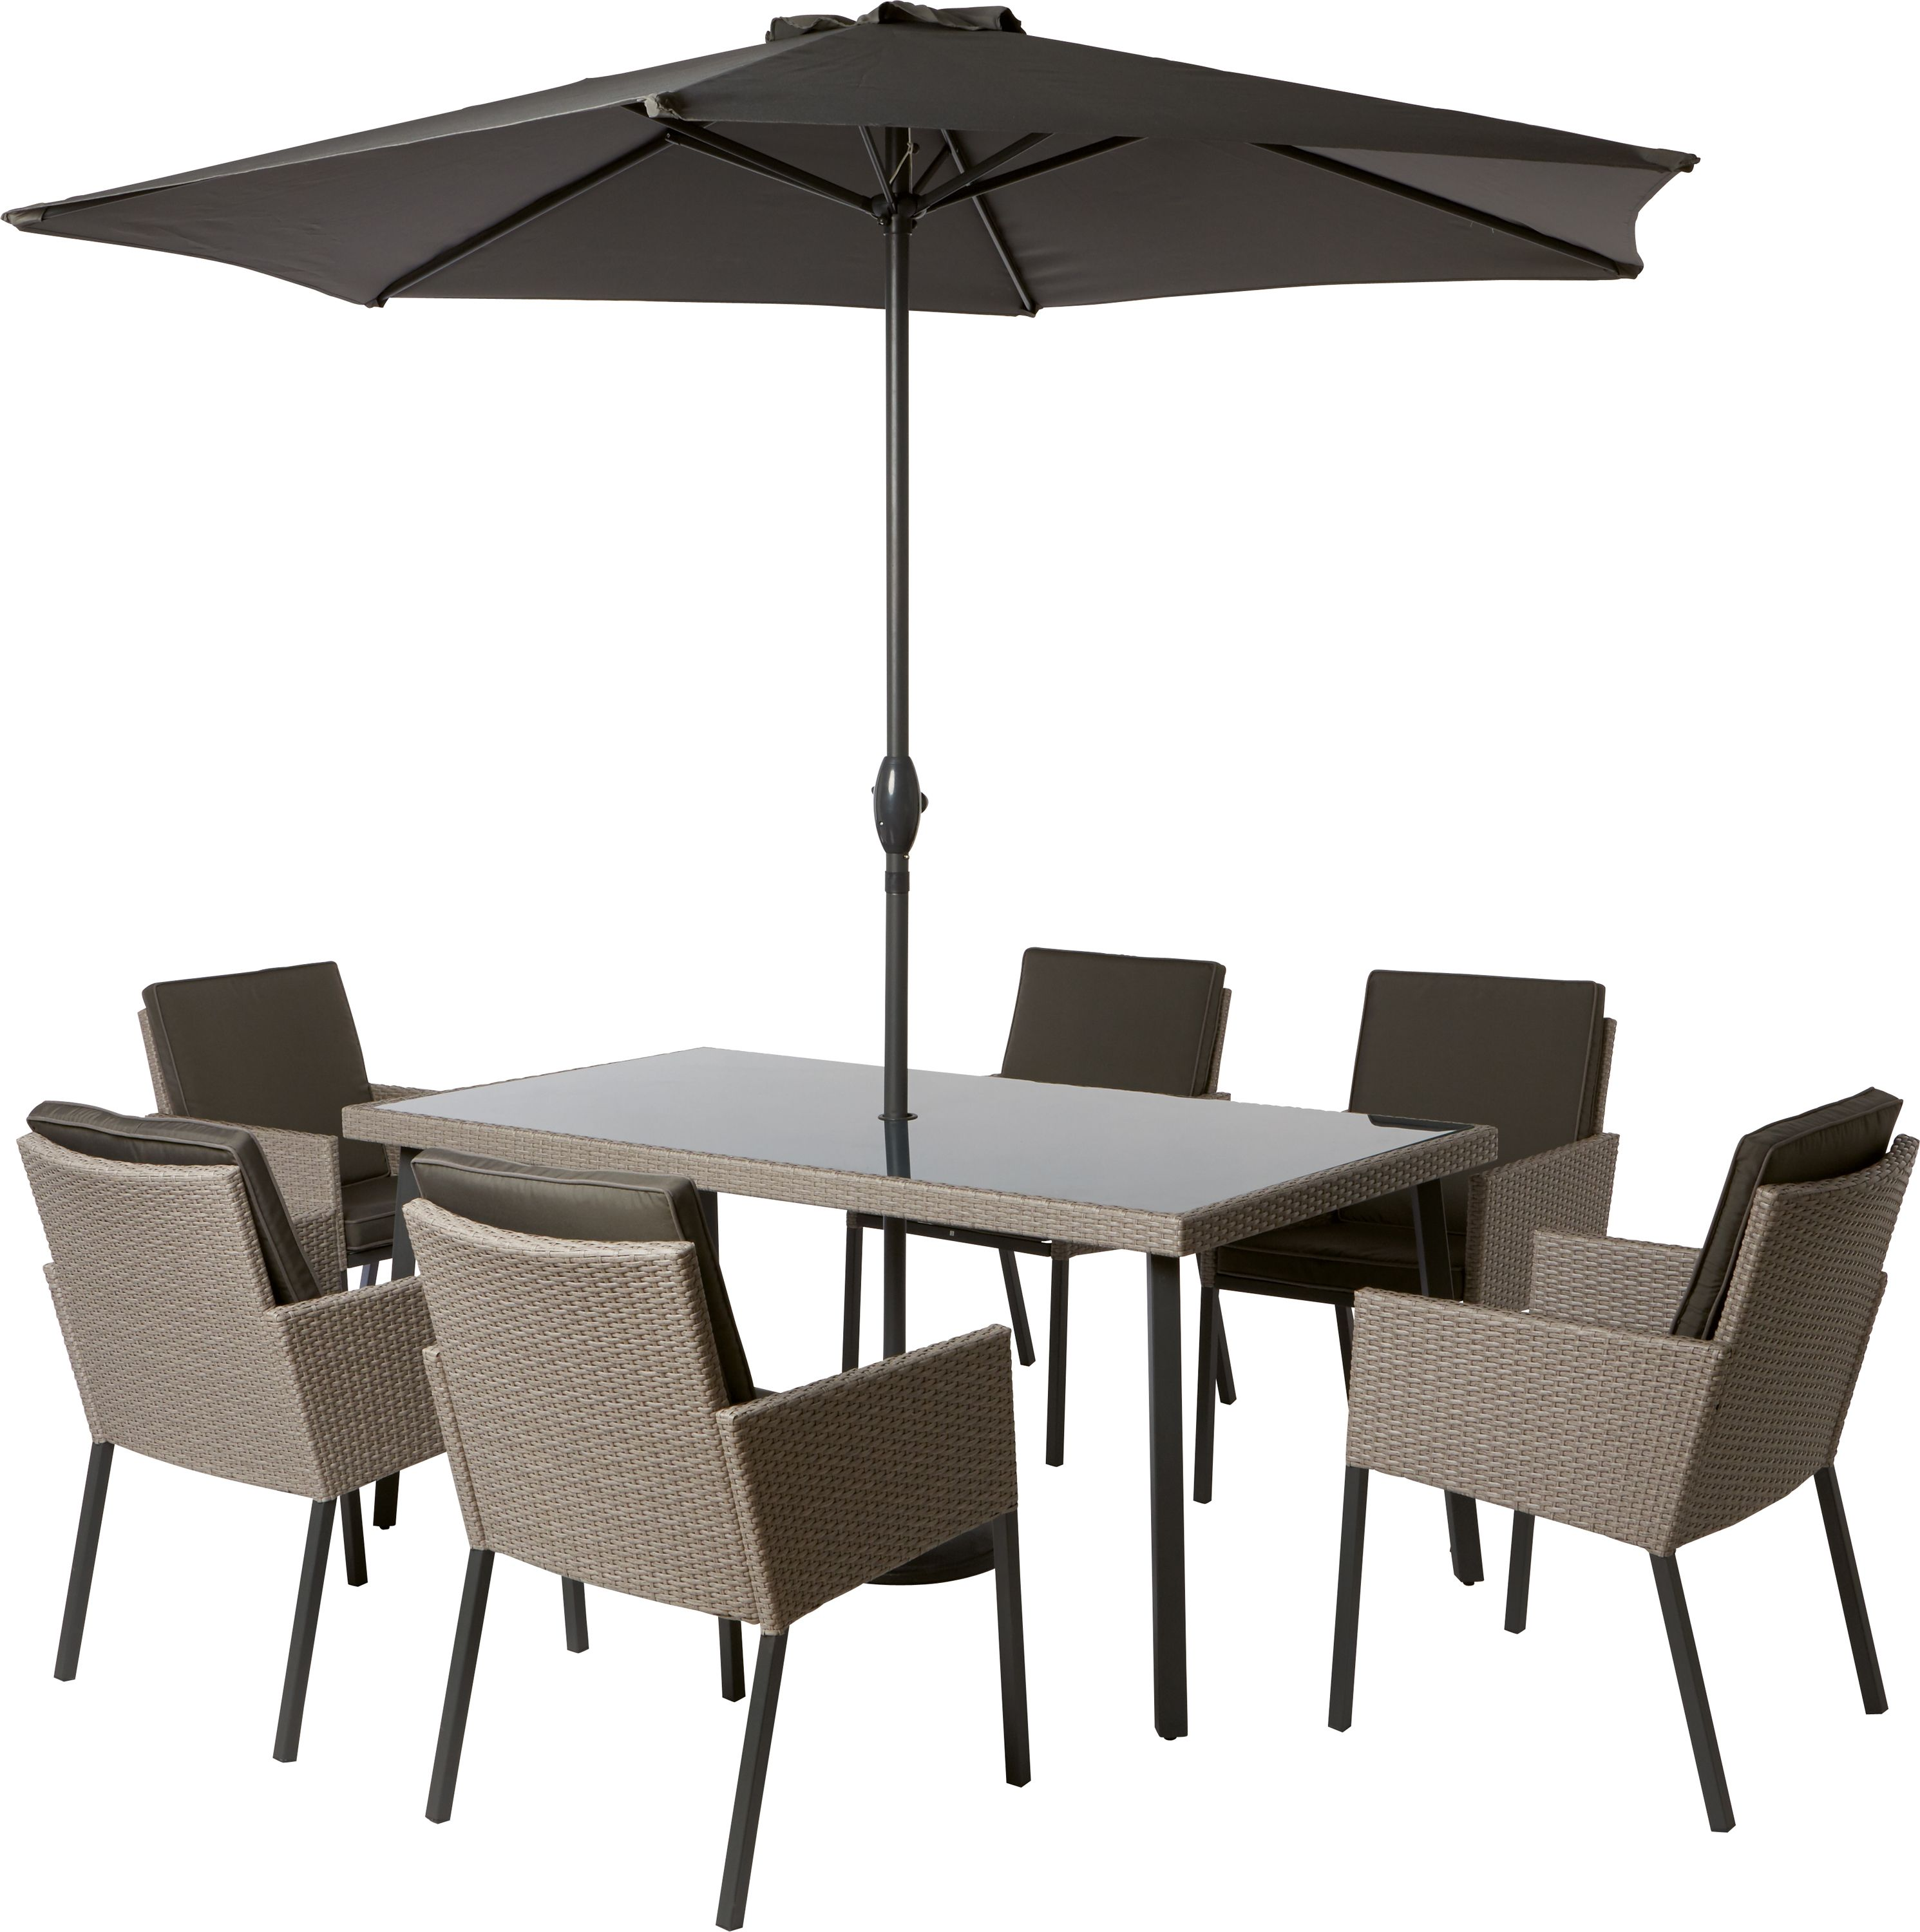 palermo 6 seater rattan effect garden furniture set - Garden Furniture 6